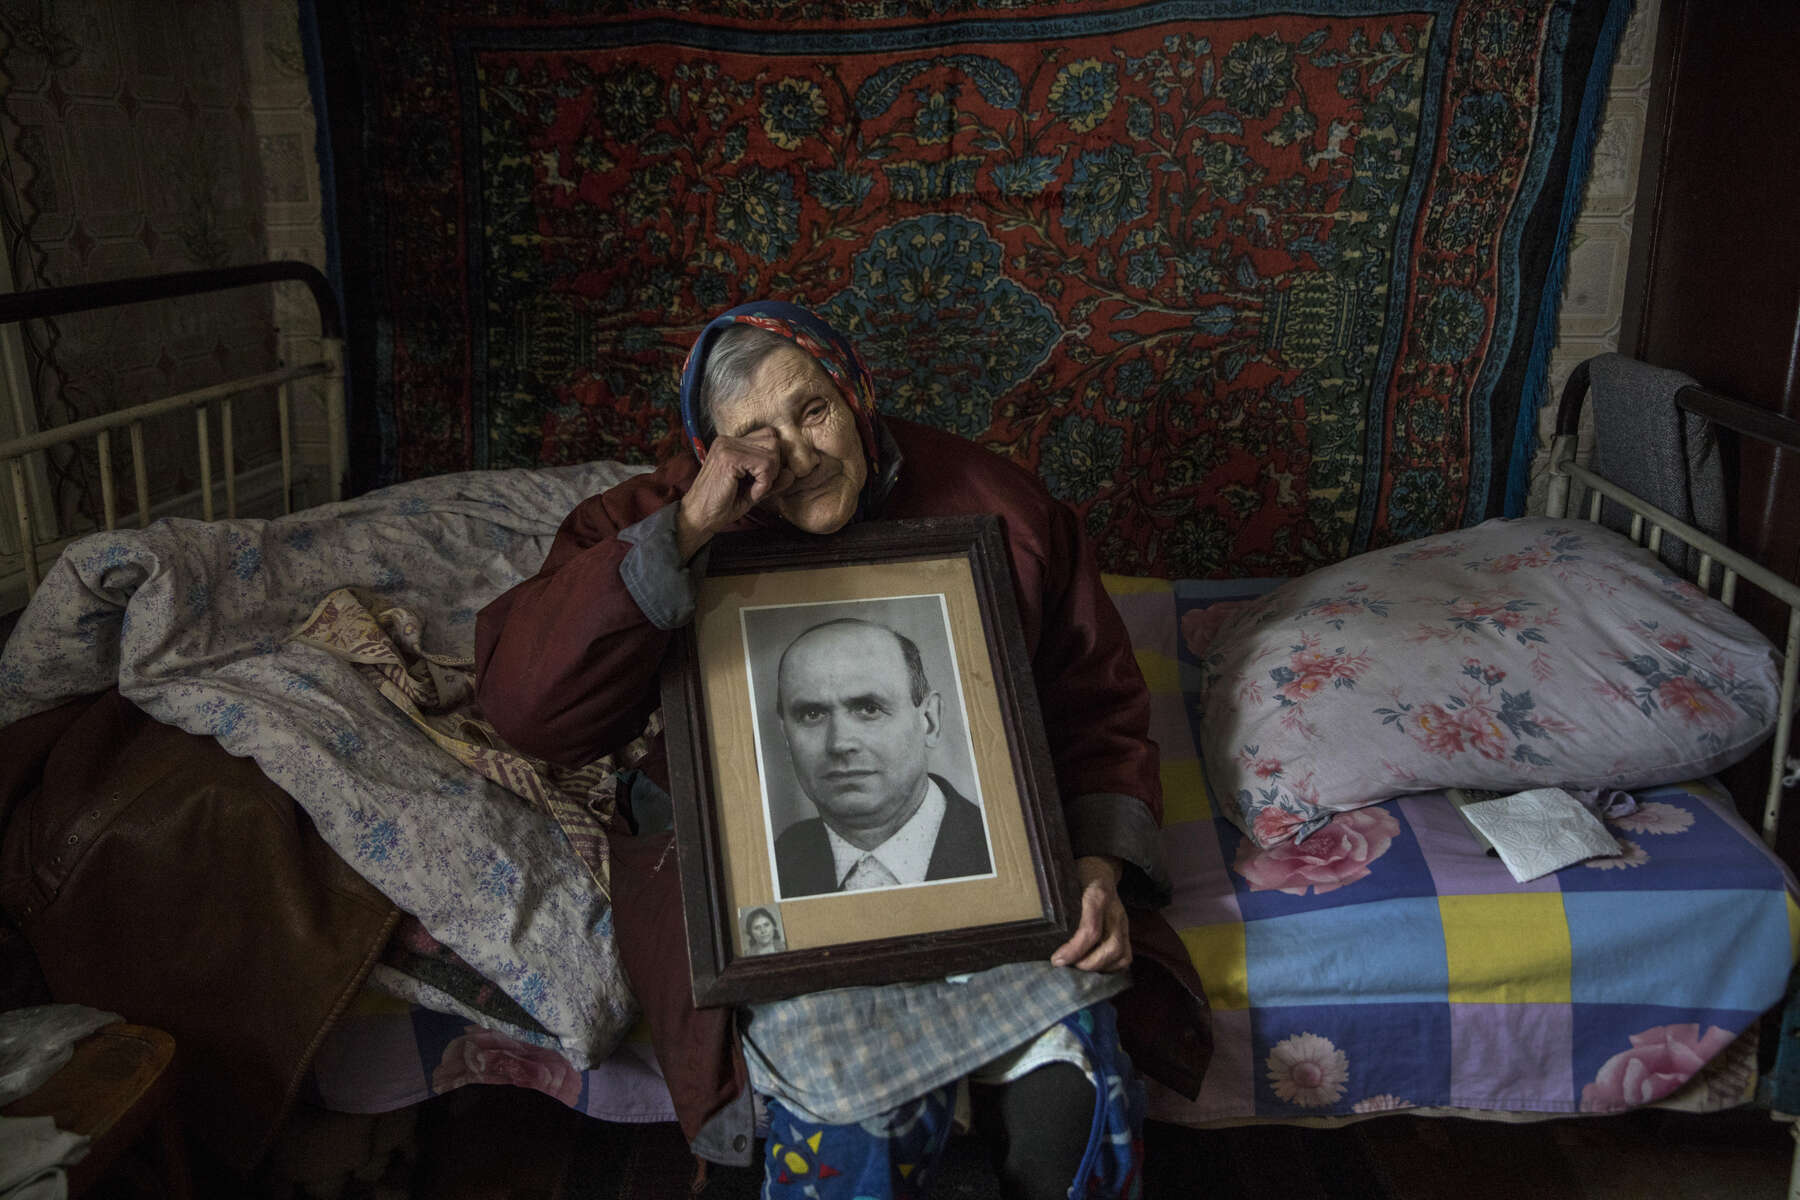 Katerinovka, Lugansk: Natalia Reshetnyakova, age 83 holds a portrait of her late husband who she was married to for over 50 years. She lives alone now. The only thing left reminding her of her husband is this portrait. The population of Natalia's village comprises less than 300 people. The village is exposed to the sniper's fire as the contact line is just few kilometers away.